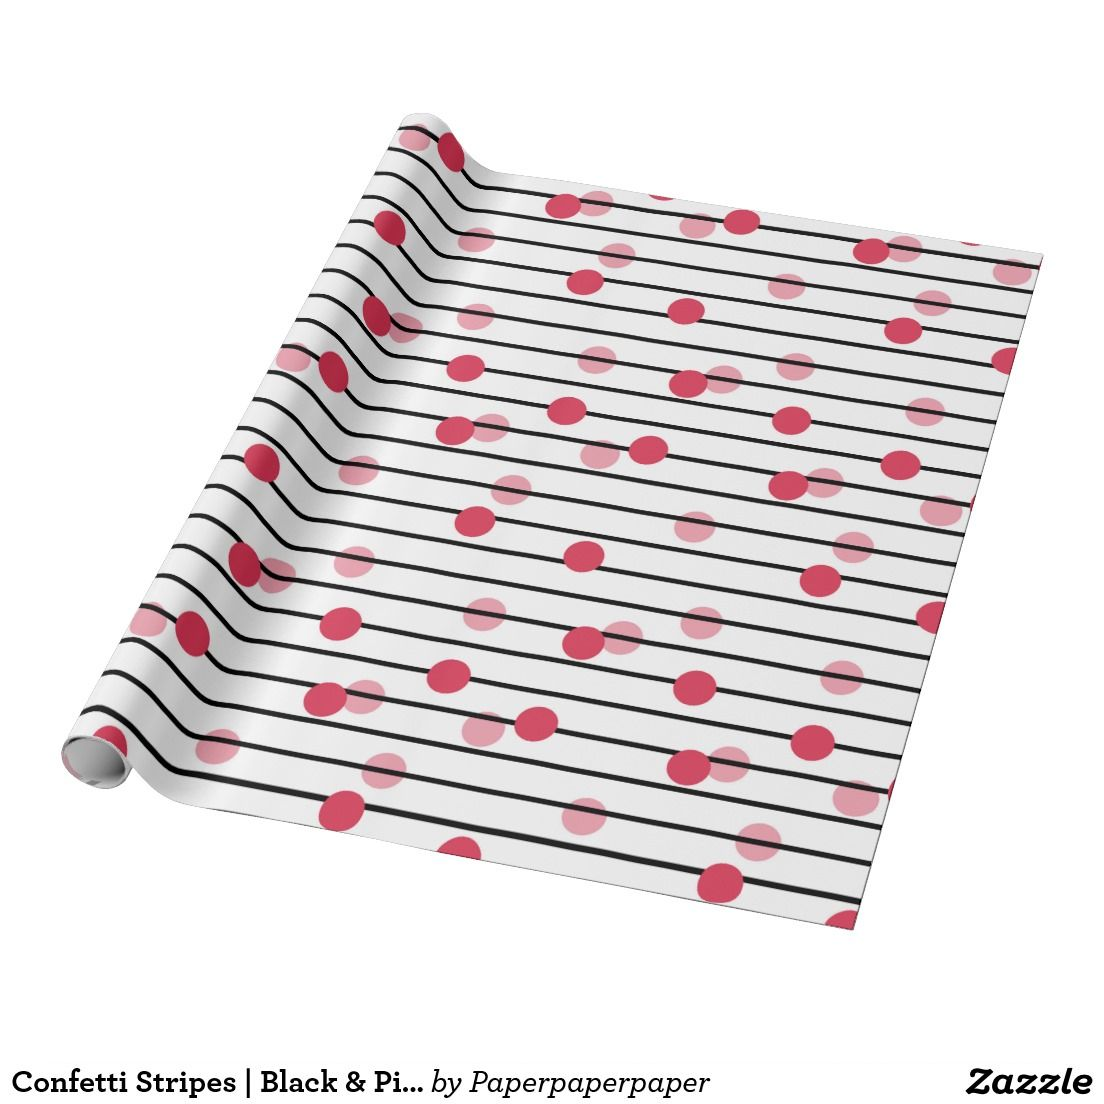 Confetti Stripes | Black & Pink Pattern Wrapping Paper